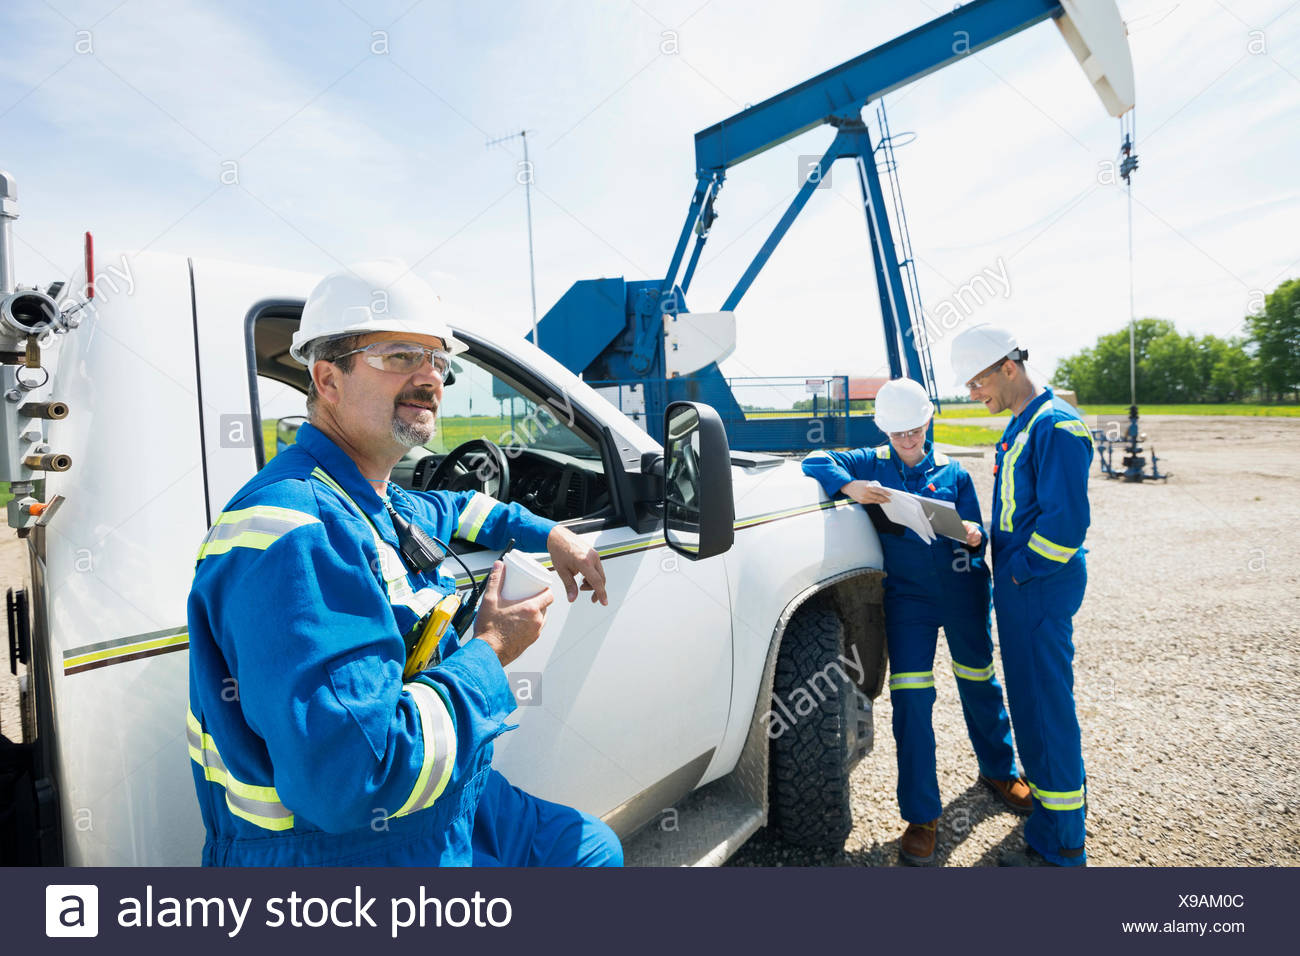 Workers at truck near oil well - Stock Image